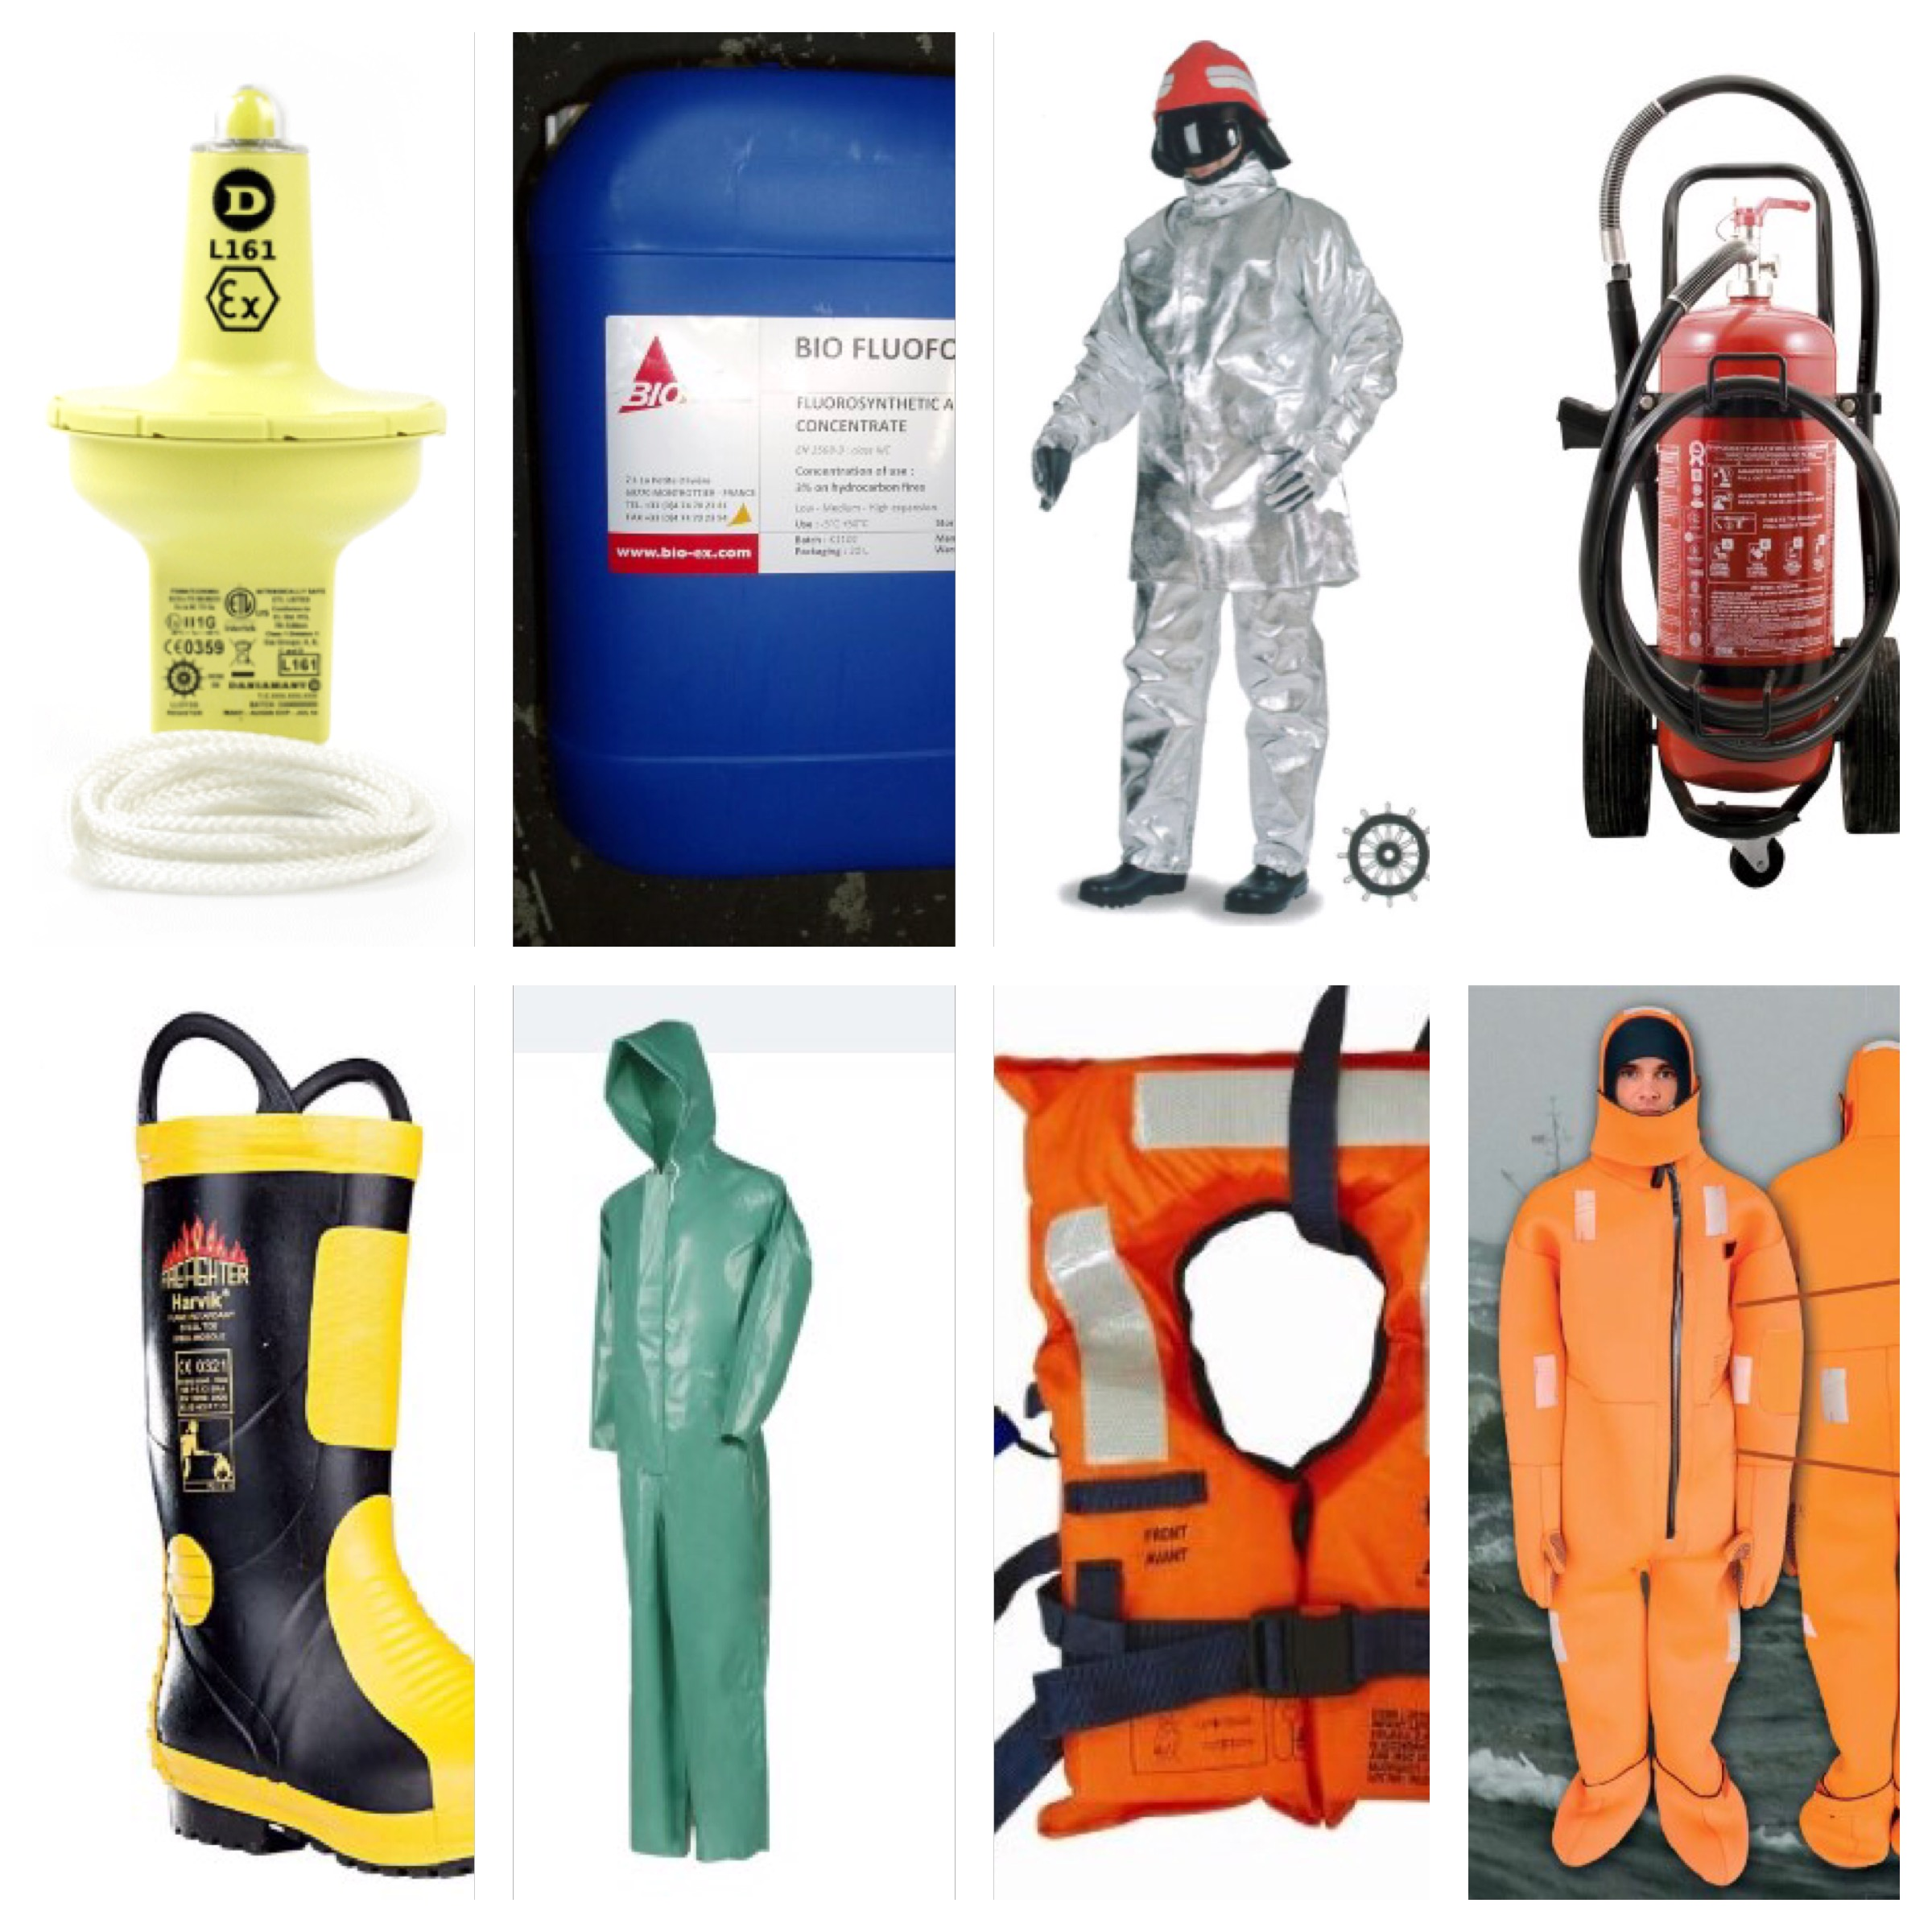 33 Safety Equipment